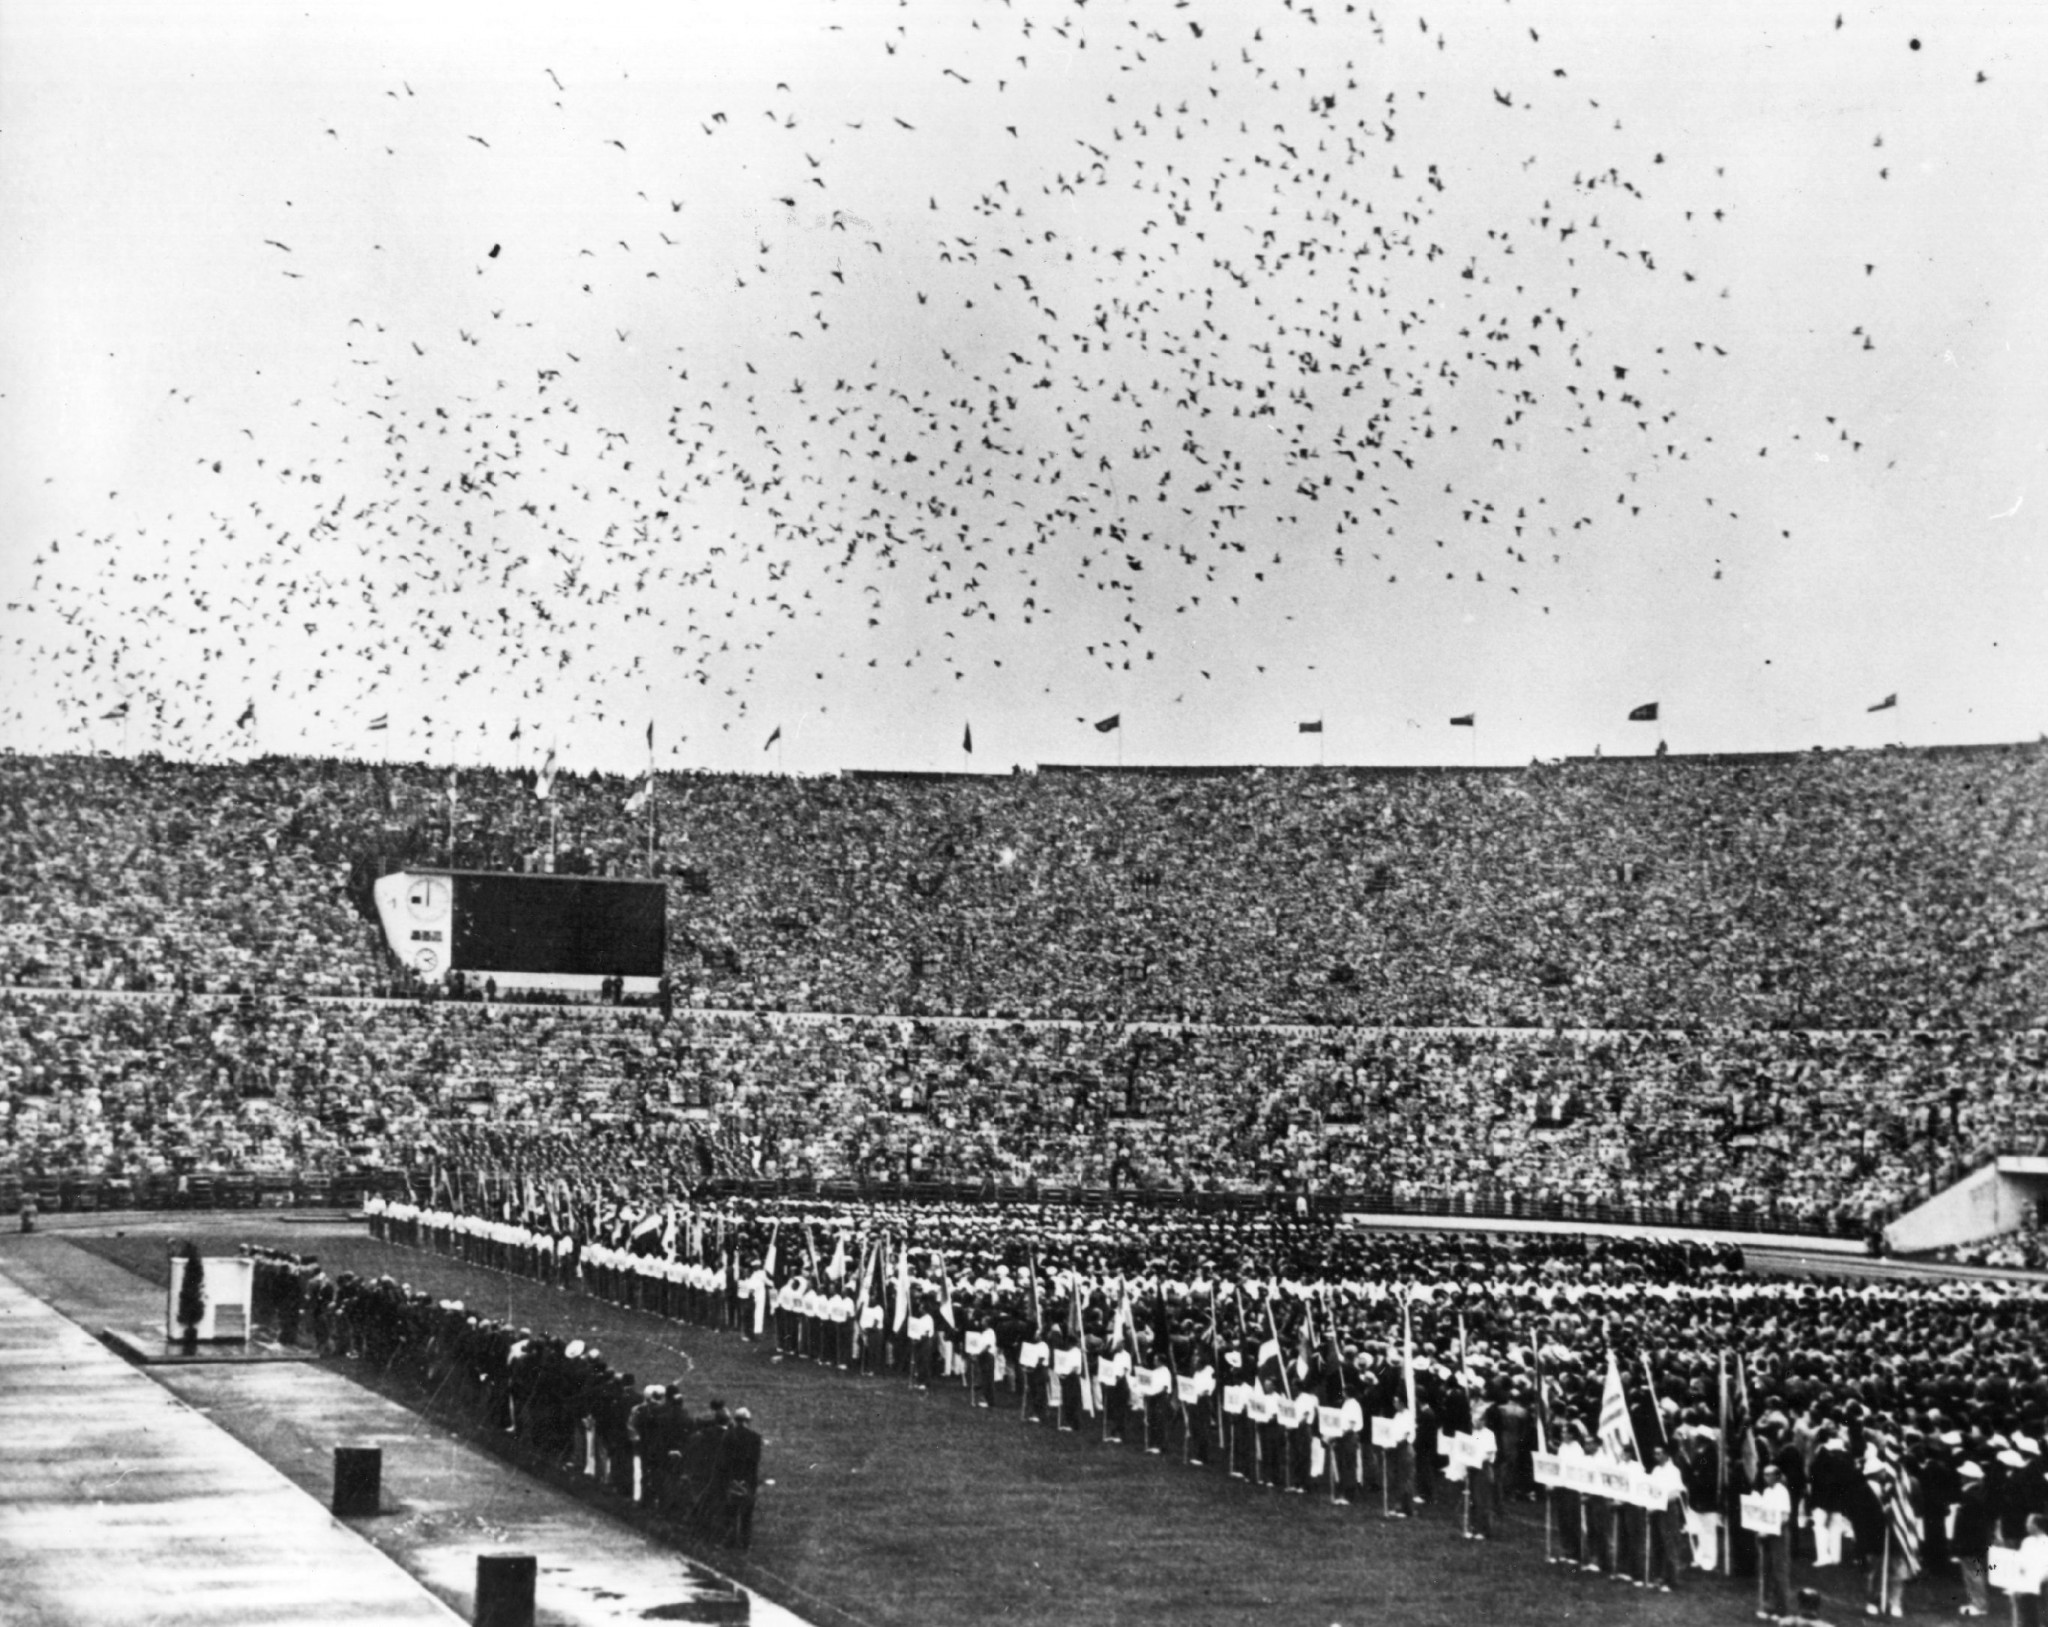 The stadium was the main venue for the Helsinki 1952 Olympic Games ©Getty Images